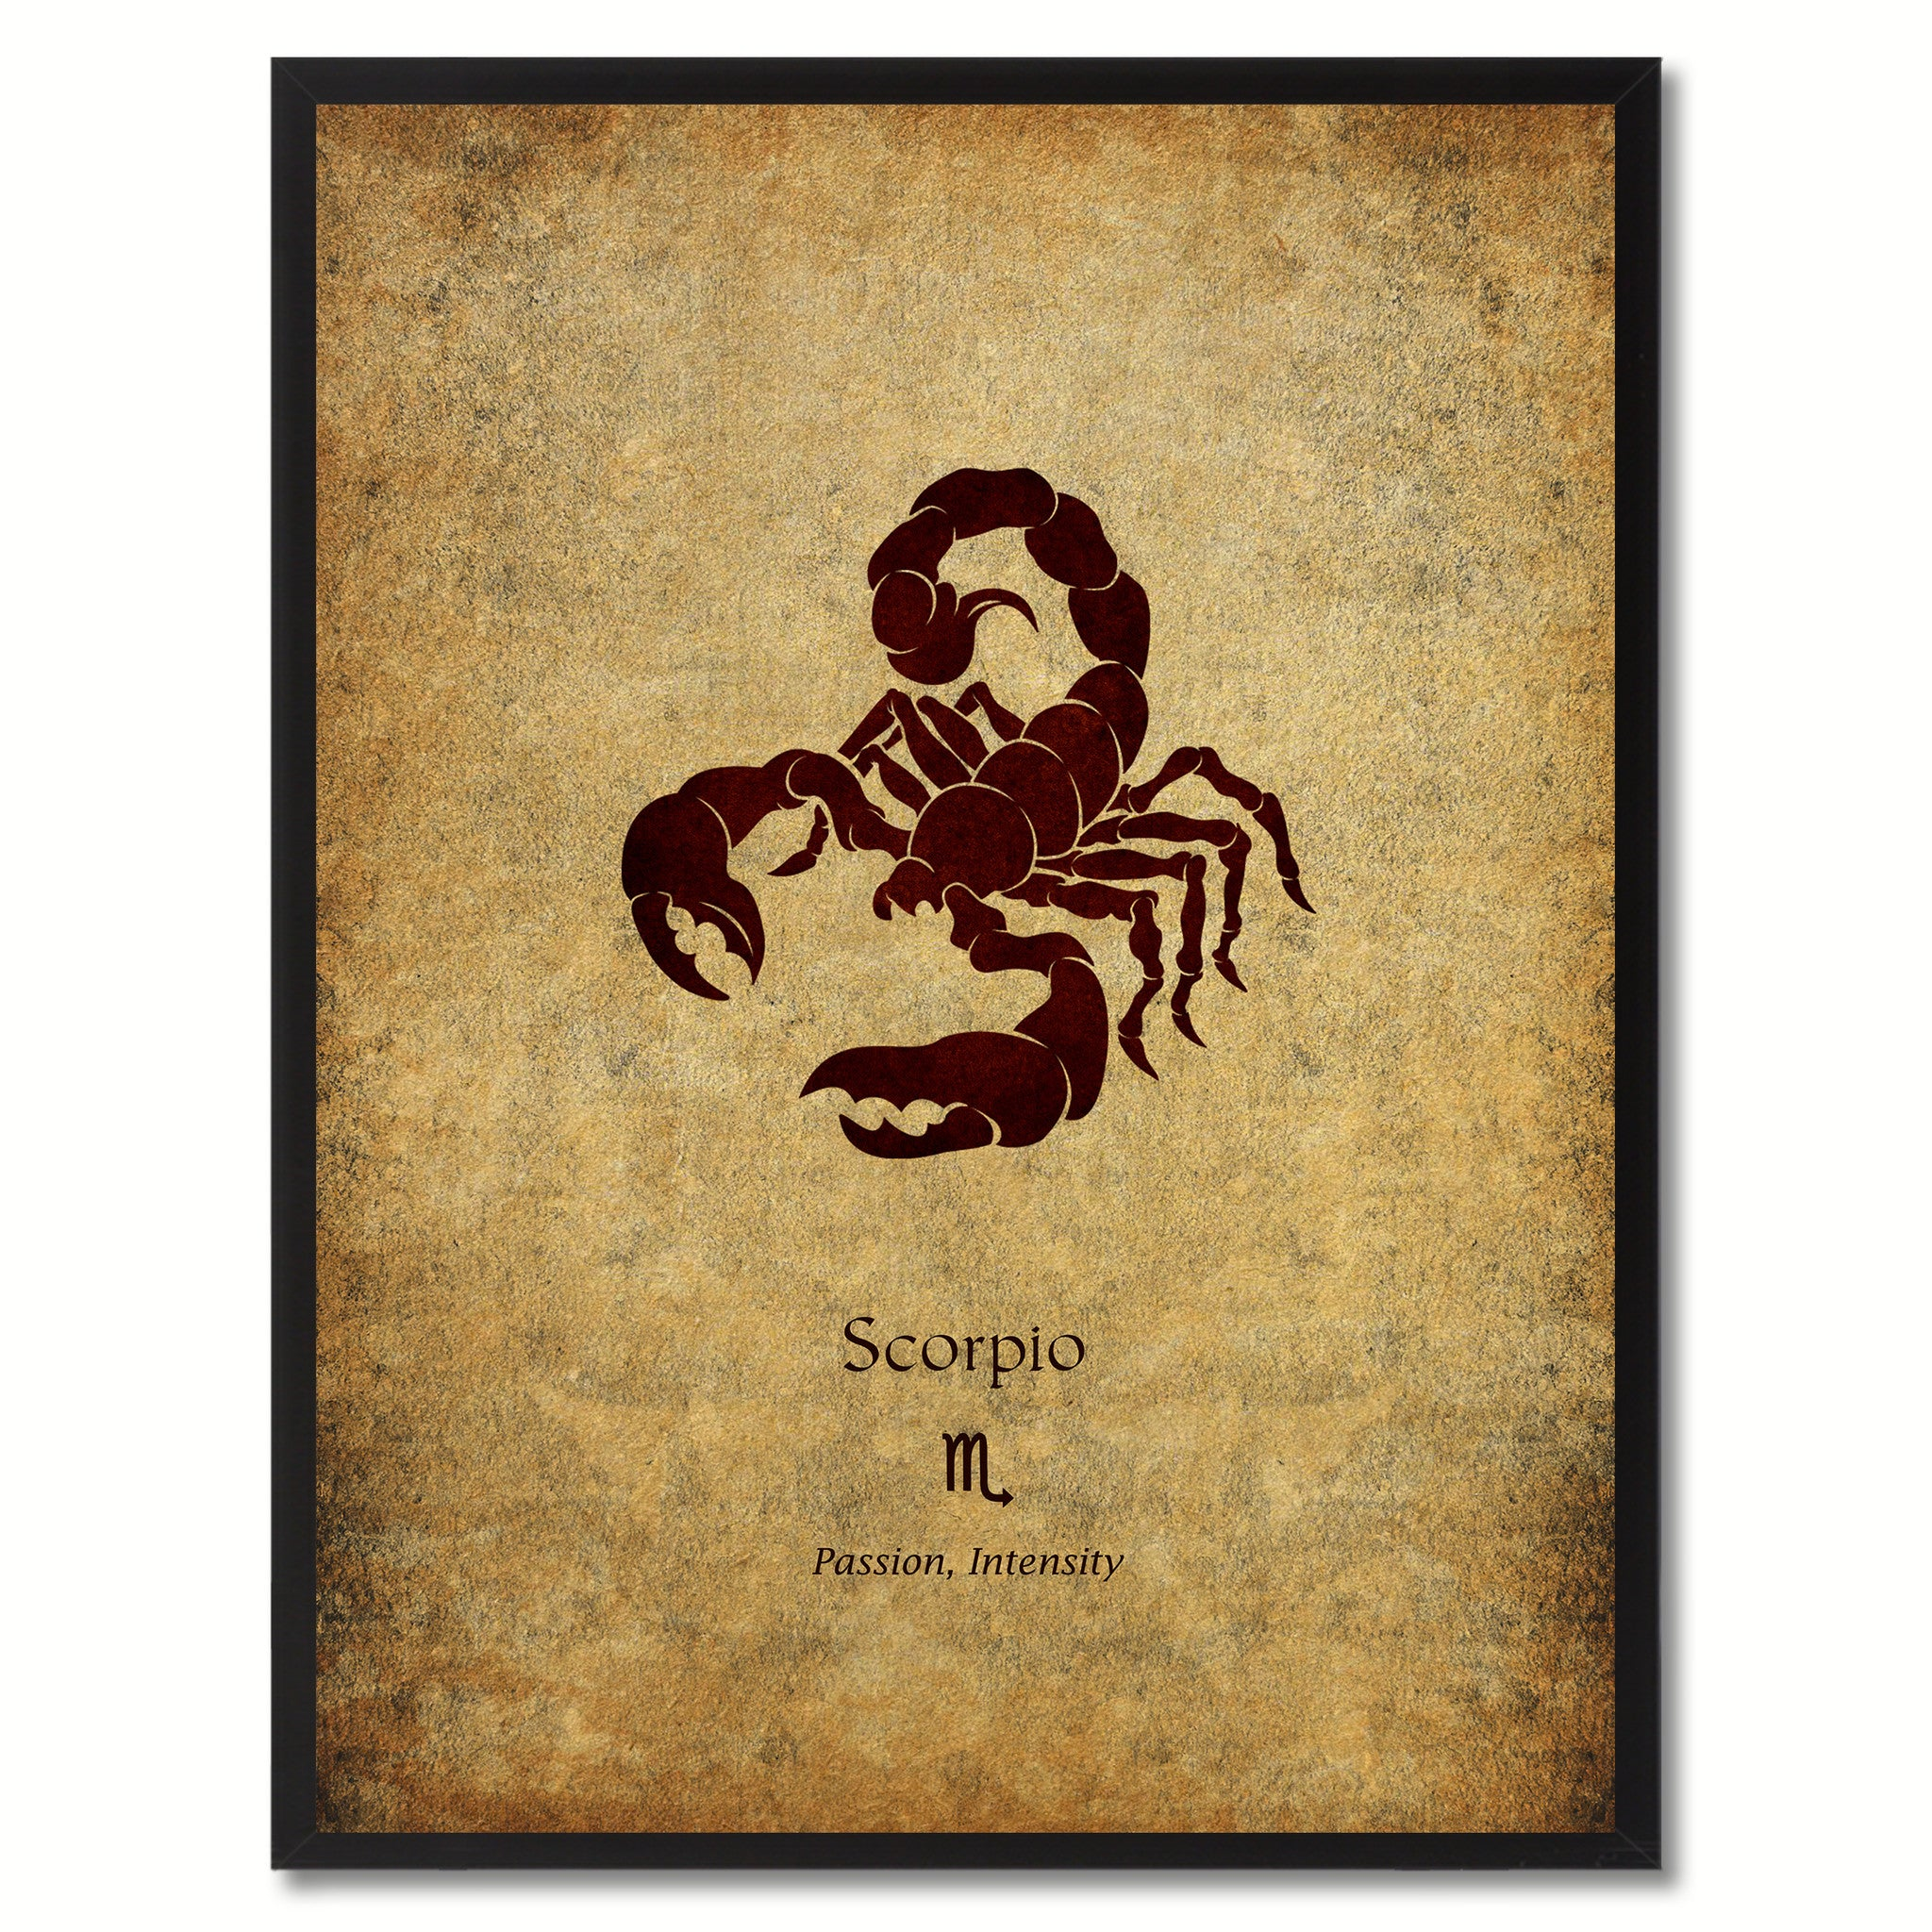 Zodiac Scorpio Horoscope Astrology Canvas Print, Black Picture Frame Home  Decor Wall Art Gift